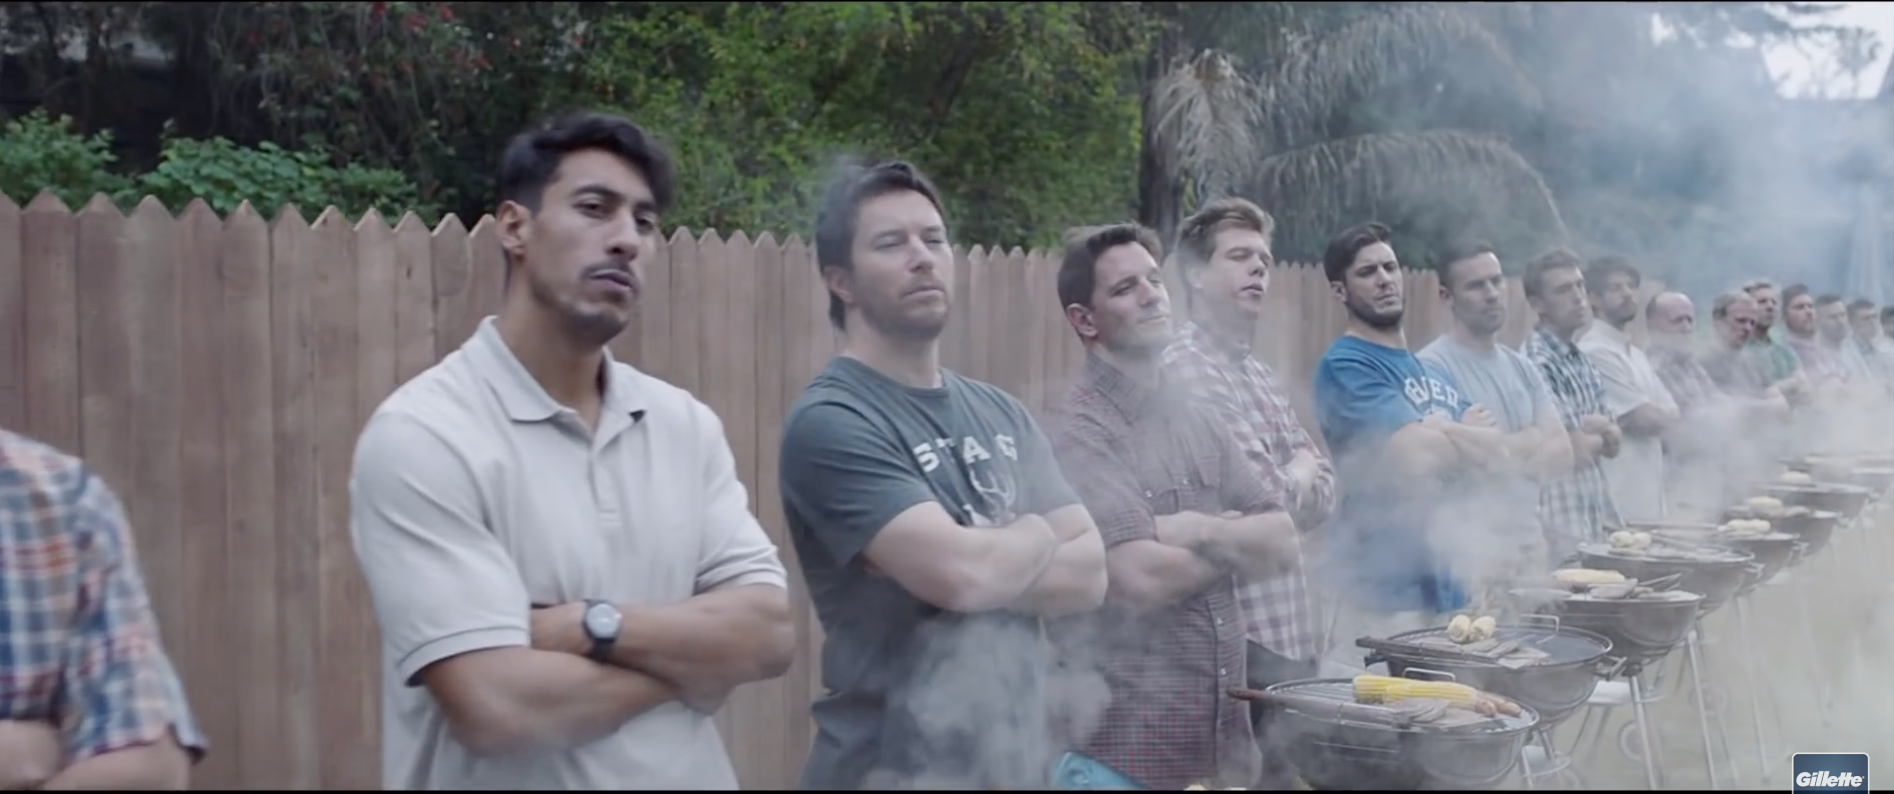 "A scene from Gillette's ad titled ""We Believe: The Best Men Can Be"""